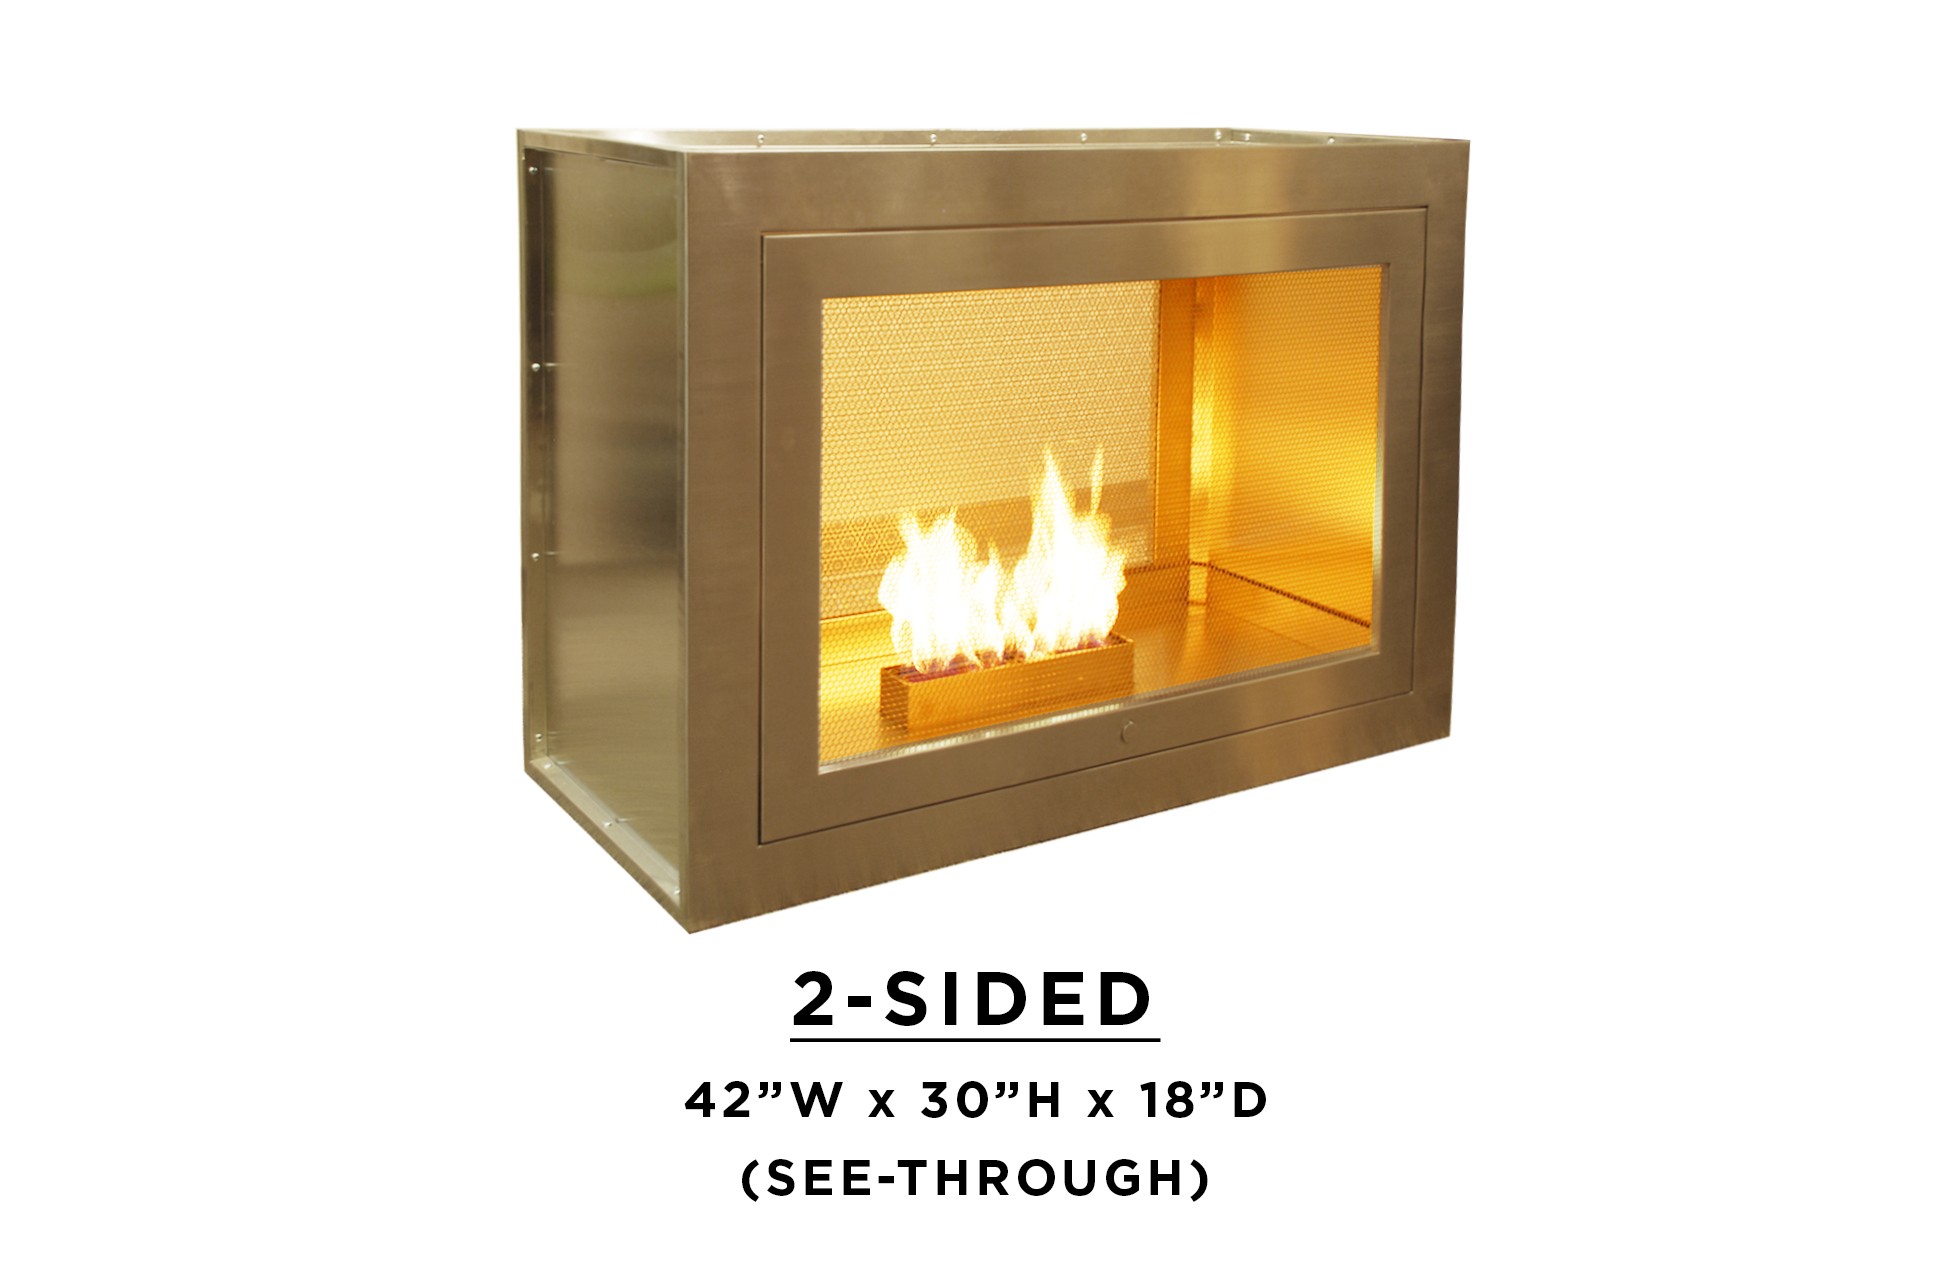 2 Sided Fireplace Two Sided Fireplace Design By Hearthcabinet